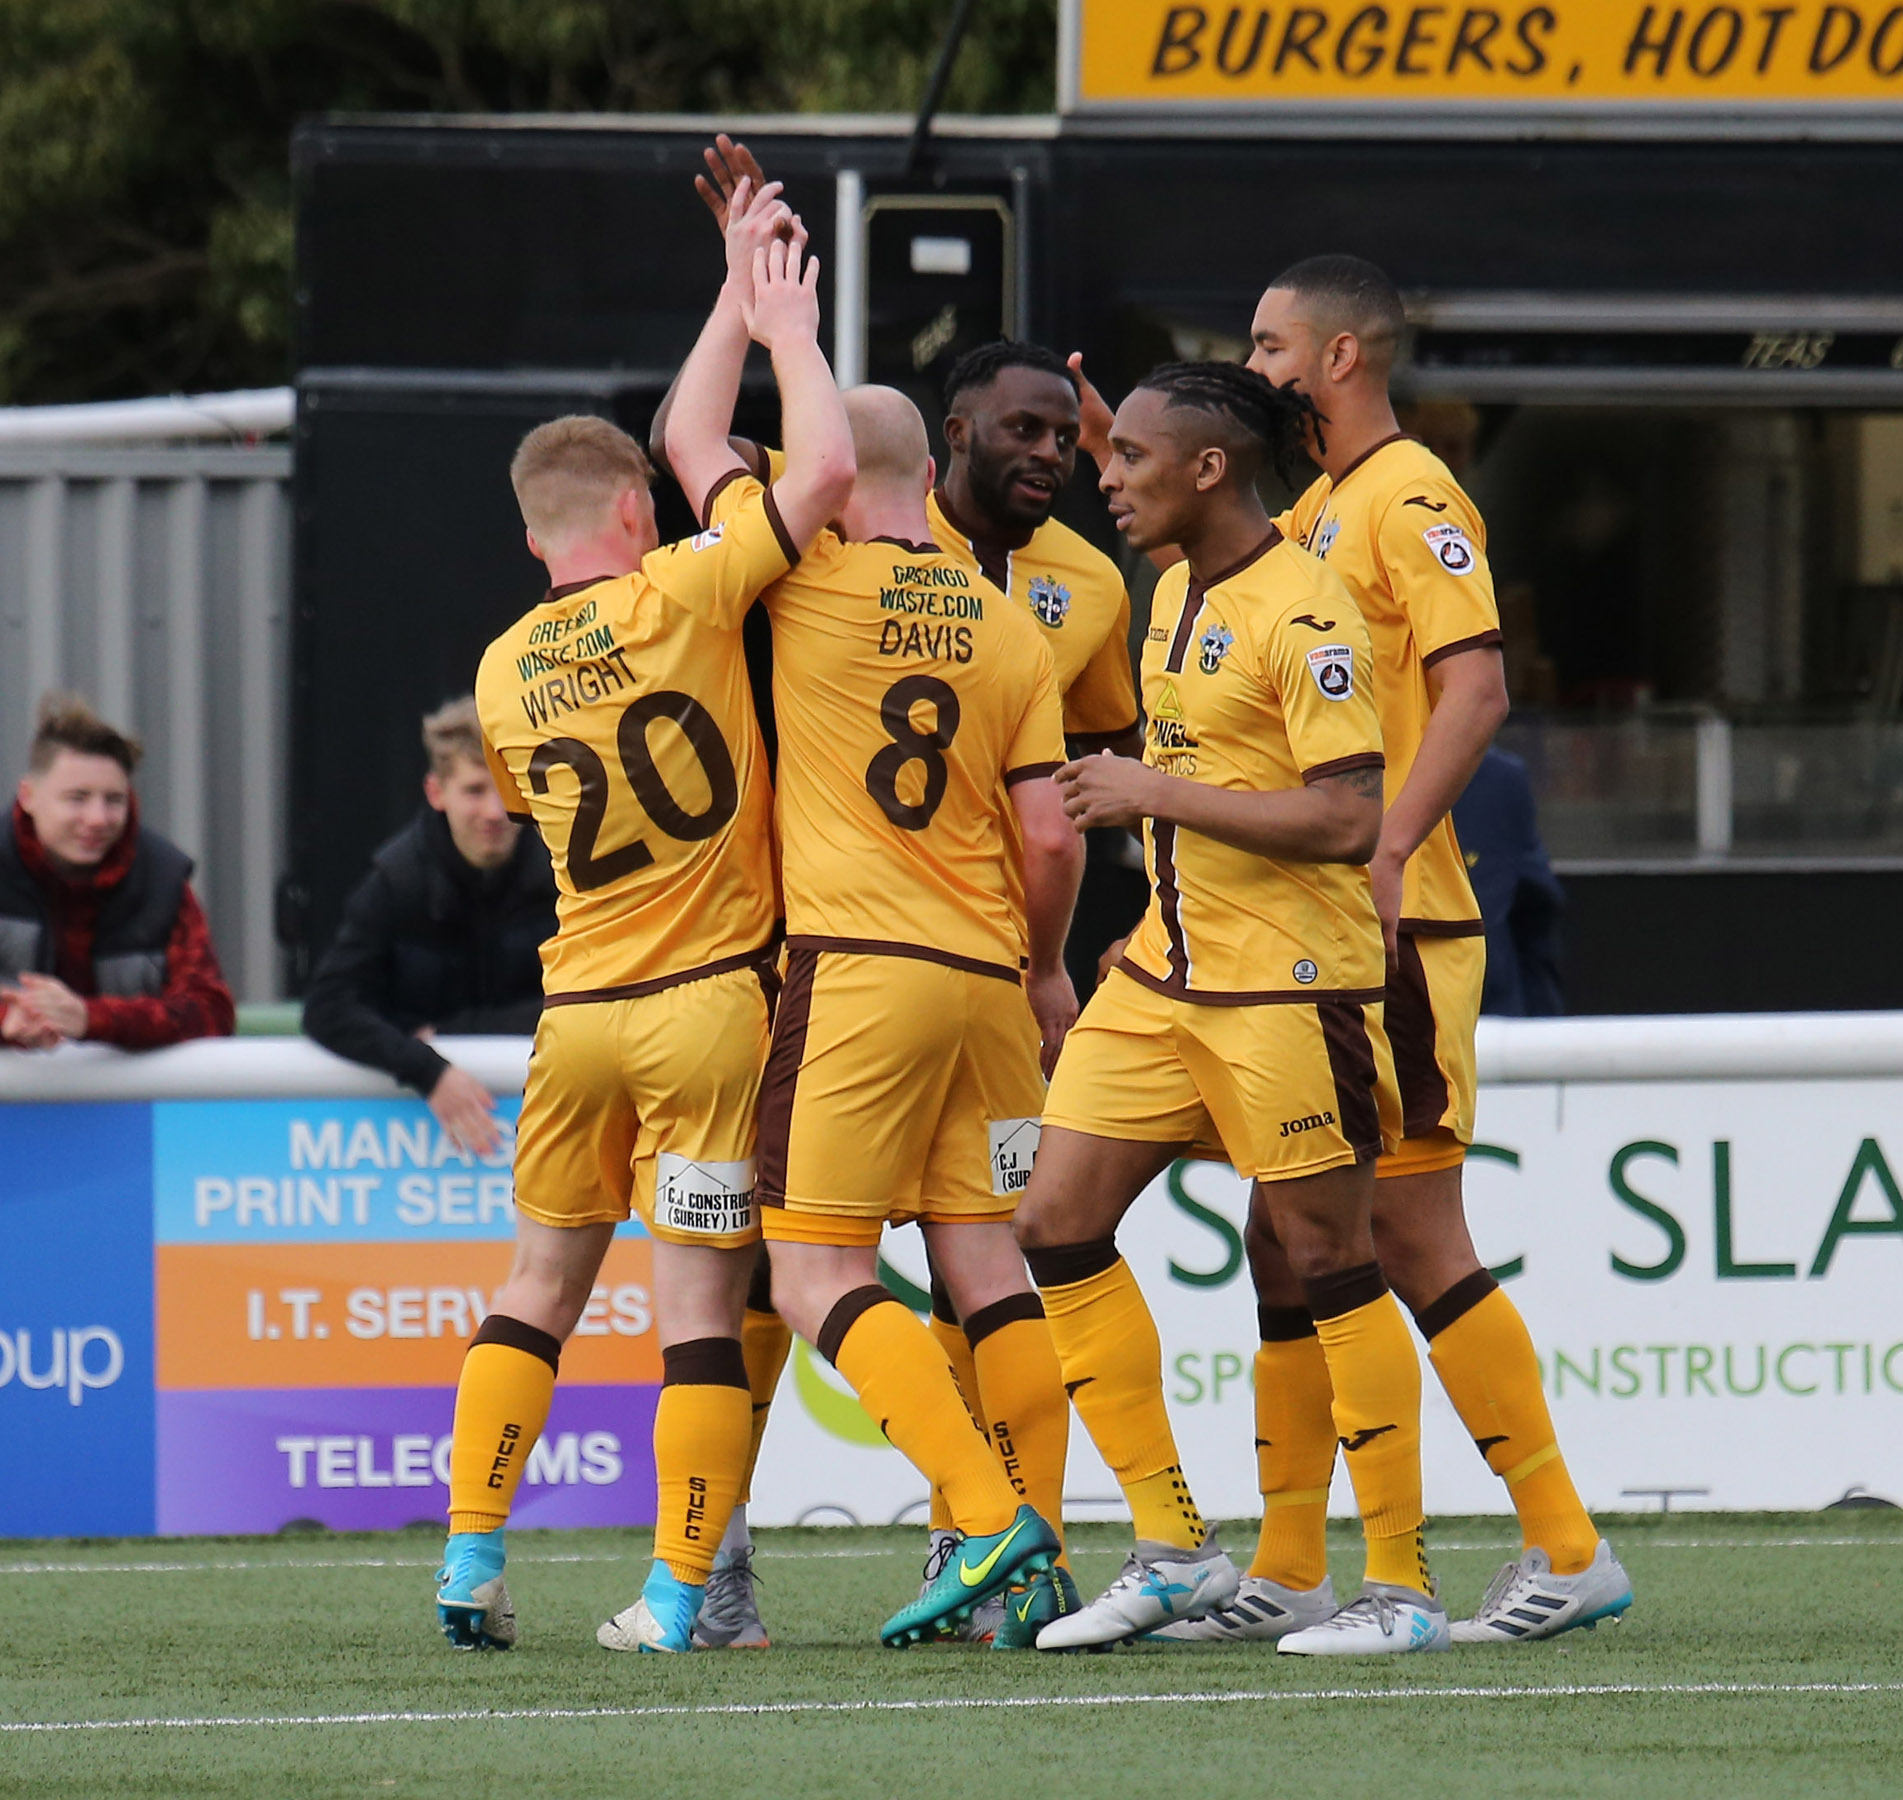 Sutton United players celebrate Tom Bolarinwa's spectacular goal against Solihull Moors. Picture: Paul Loughlin